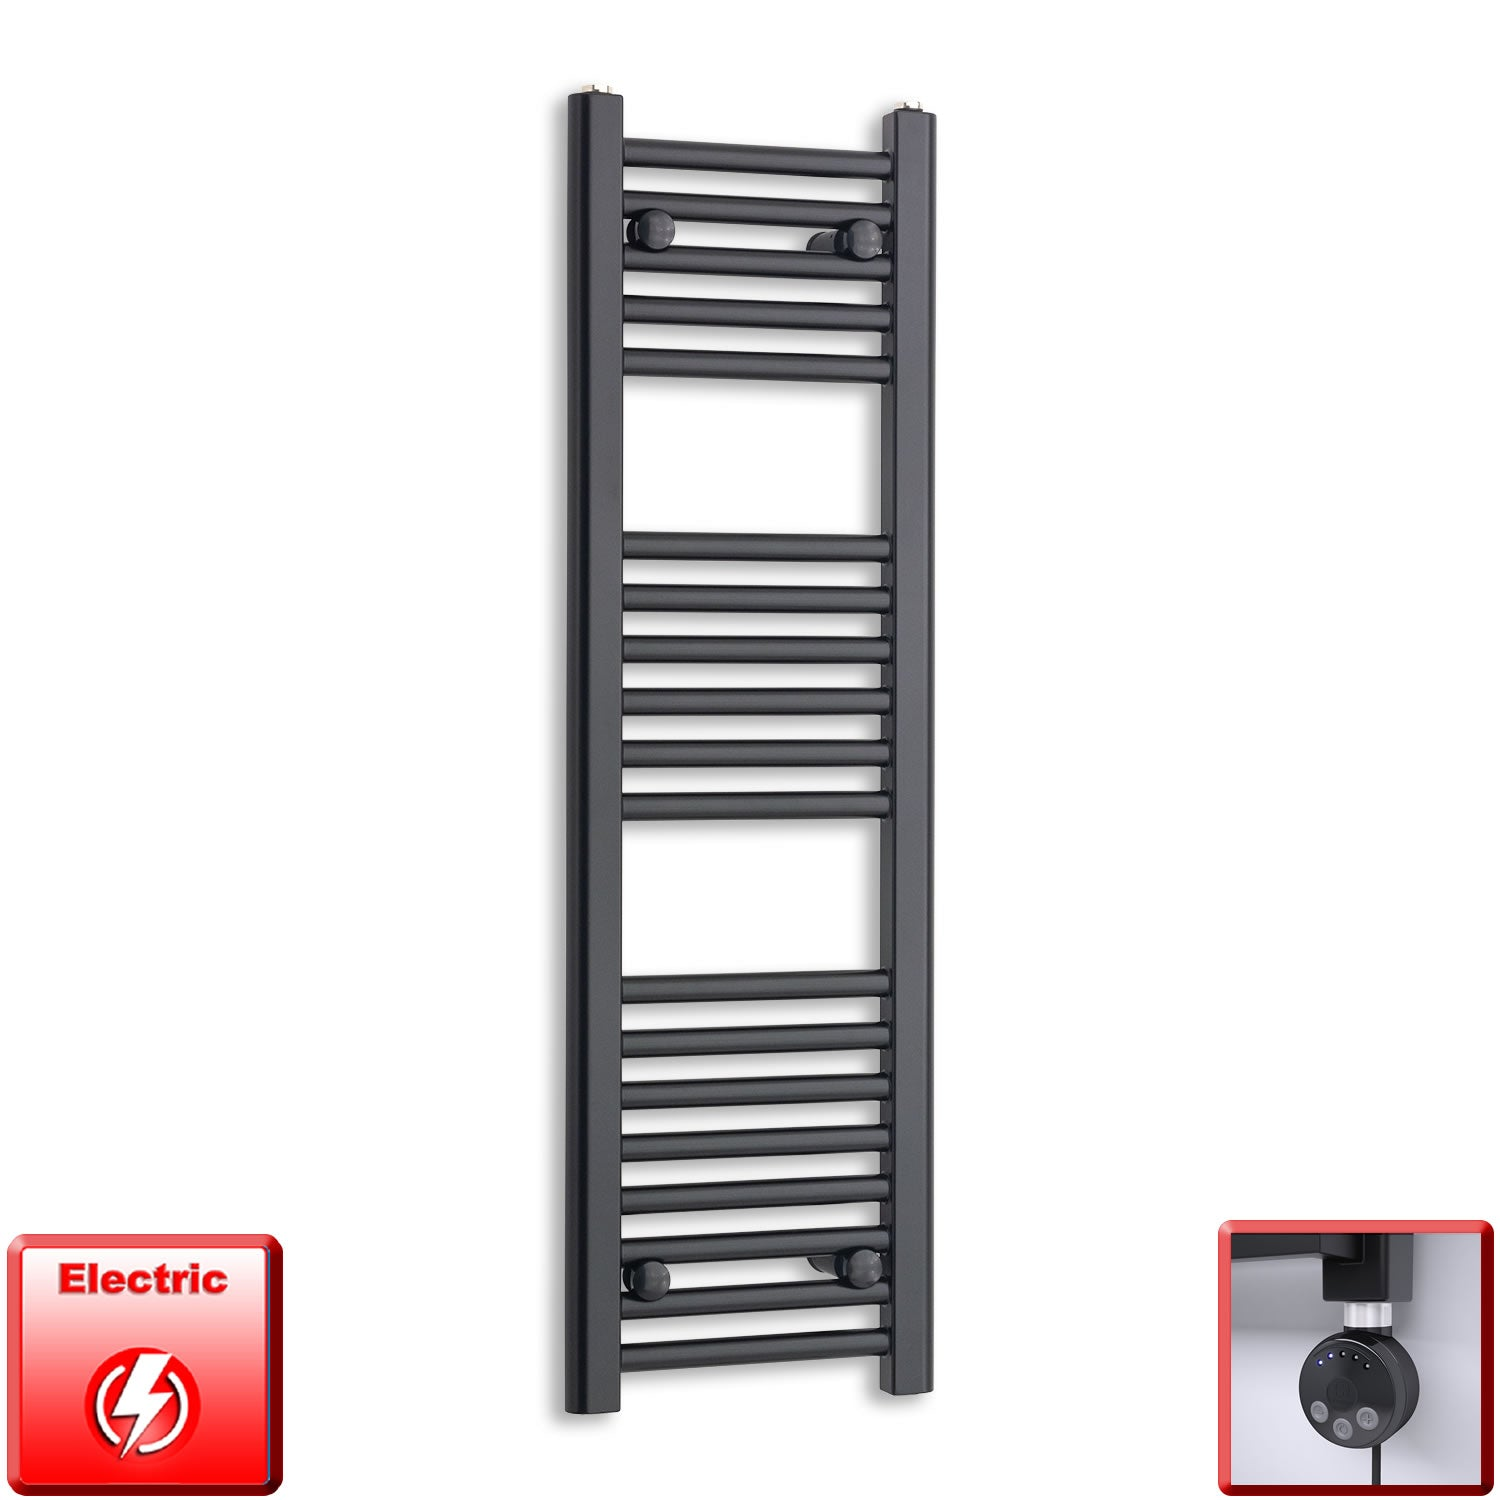 300mm Wide 800mm High Pre-Filled Black Electric Towel Rail Radiator With Thermostatic MEG Element